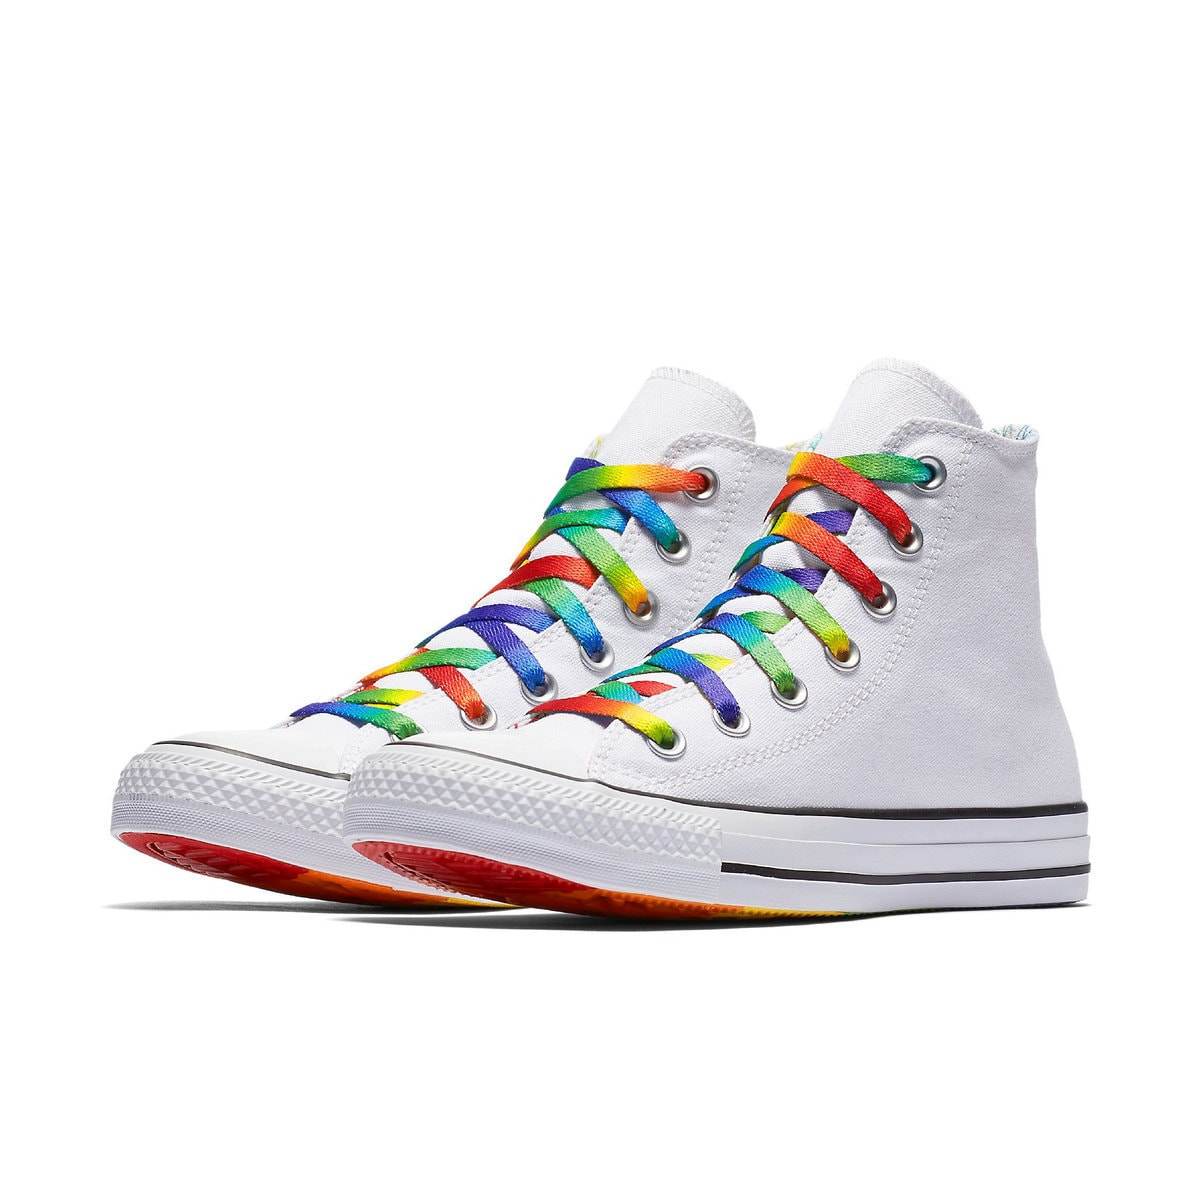 Converse Pride Parade High Top White Rainbow Womens US 6 Custom LGTBQ w   Swarovski Crystal Rhinestone Chuck Taylor All Star Sneakers Shoes 9a1400da2